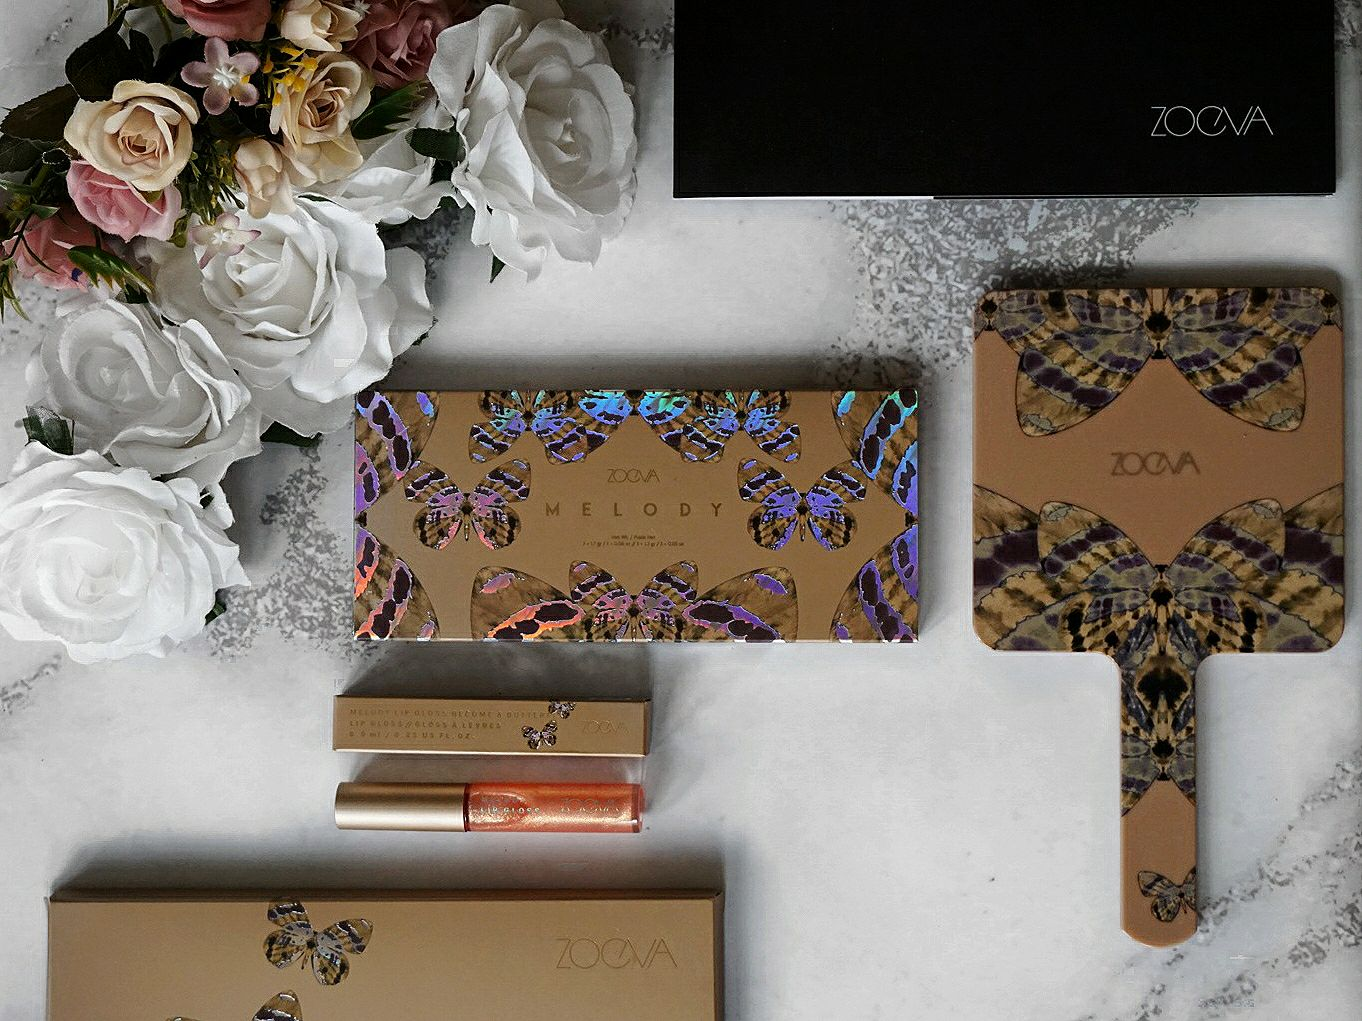 THE MELODY COLLECTION BY ZOEVA - REVIEW , SWATCHES AND FINAL LOOK